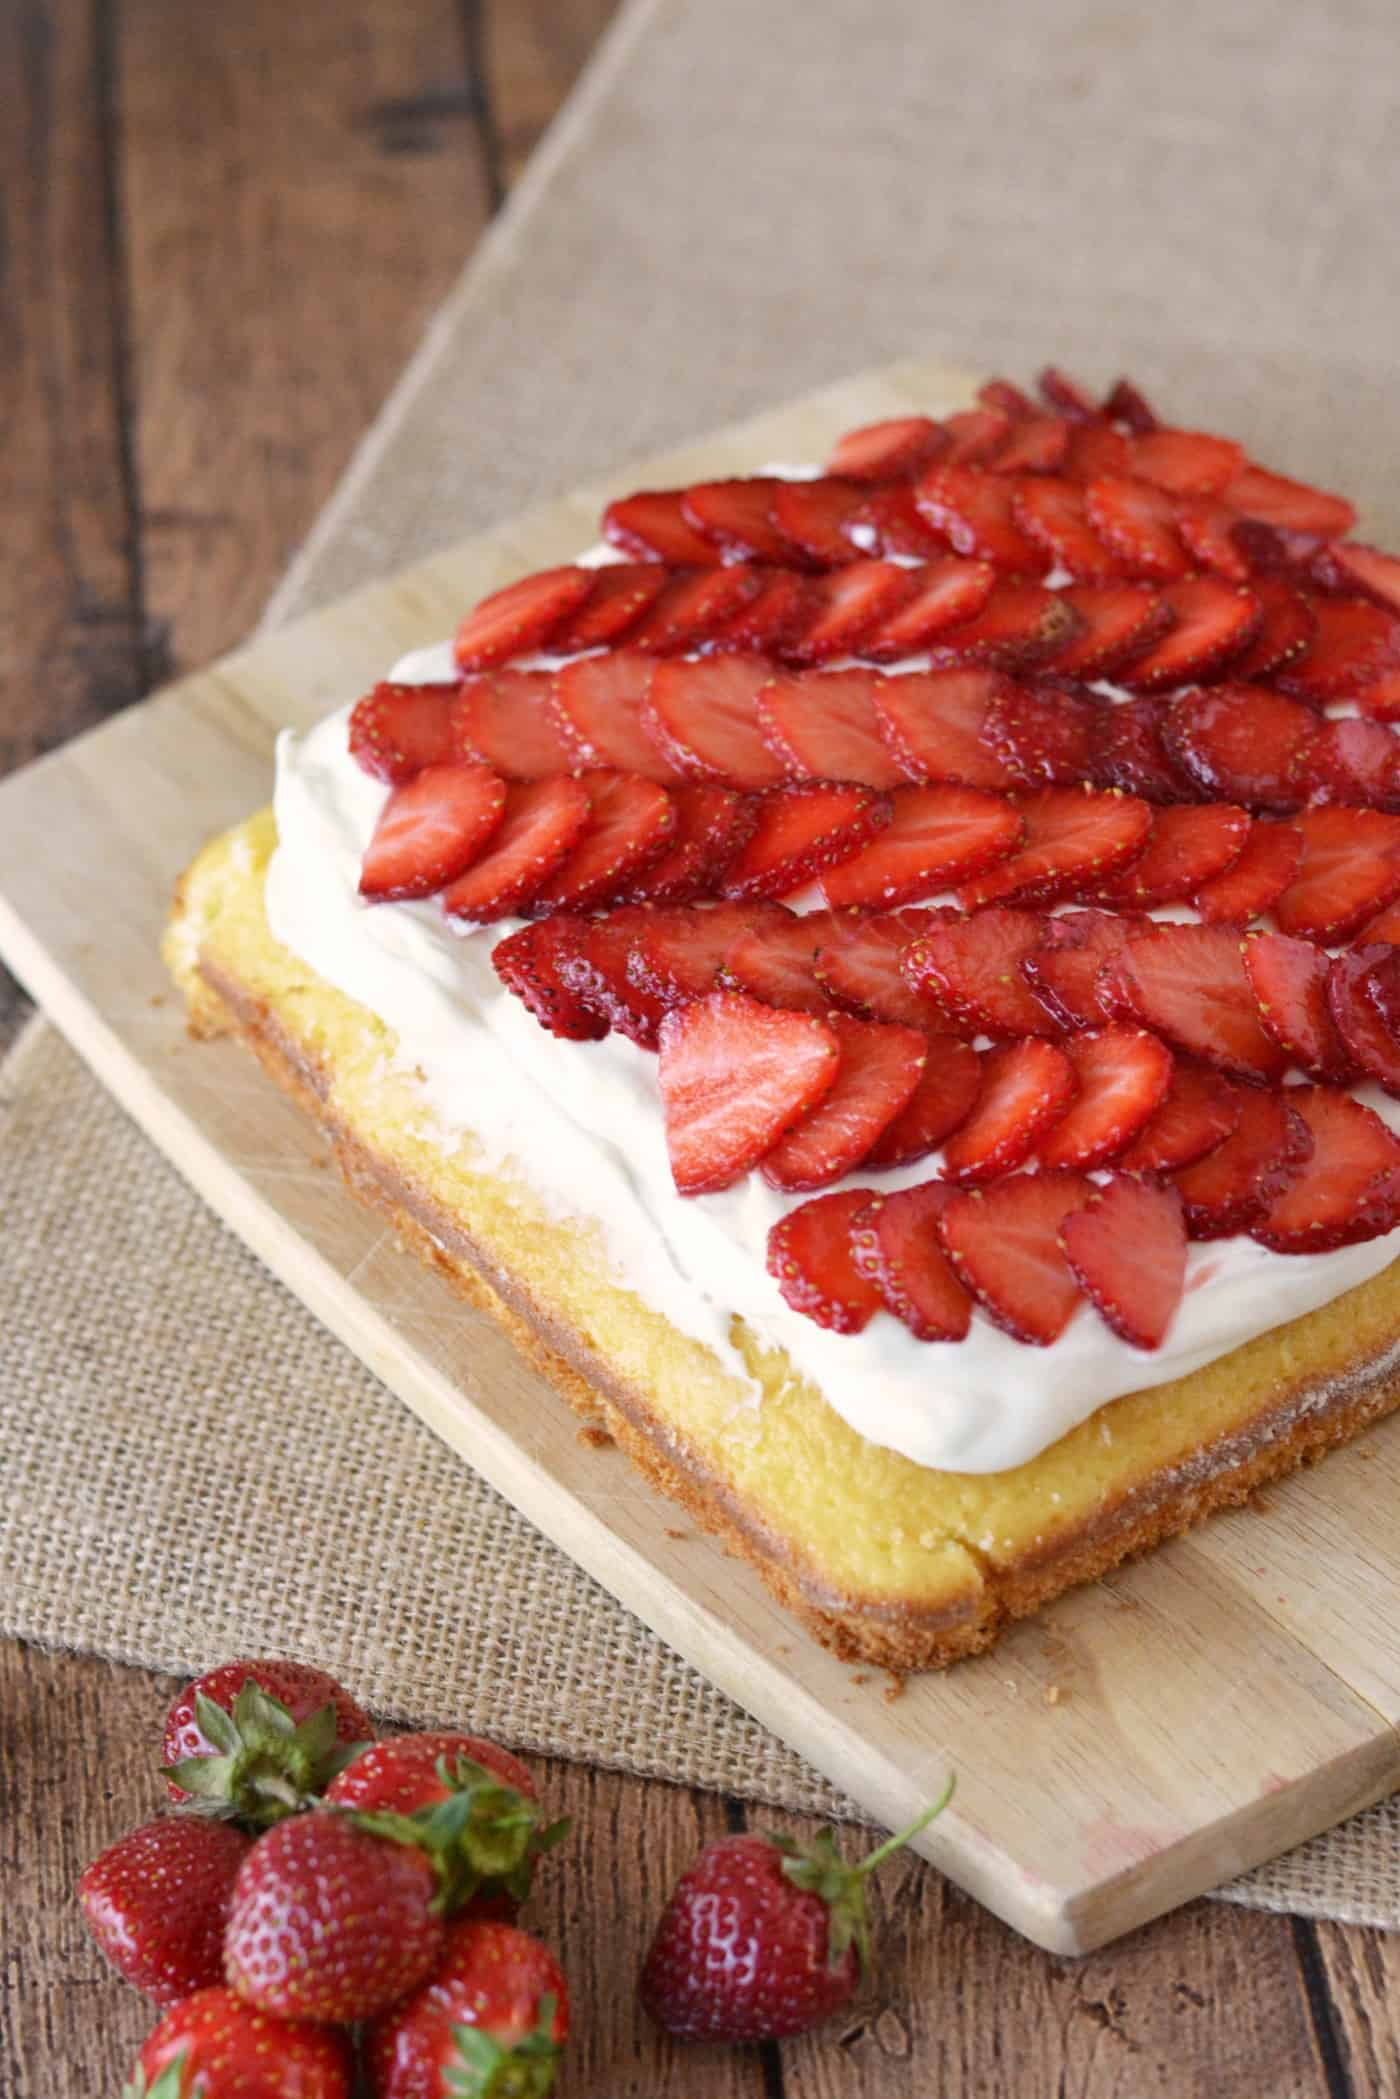 This strawberry cake recipe is a showstopper! It's moist and delicious - and not too sweet. Make this pretty, tasty dessert quickly and easily.